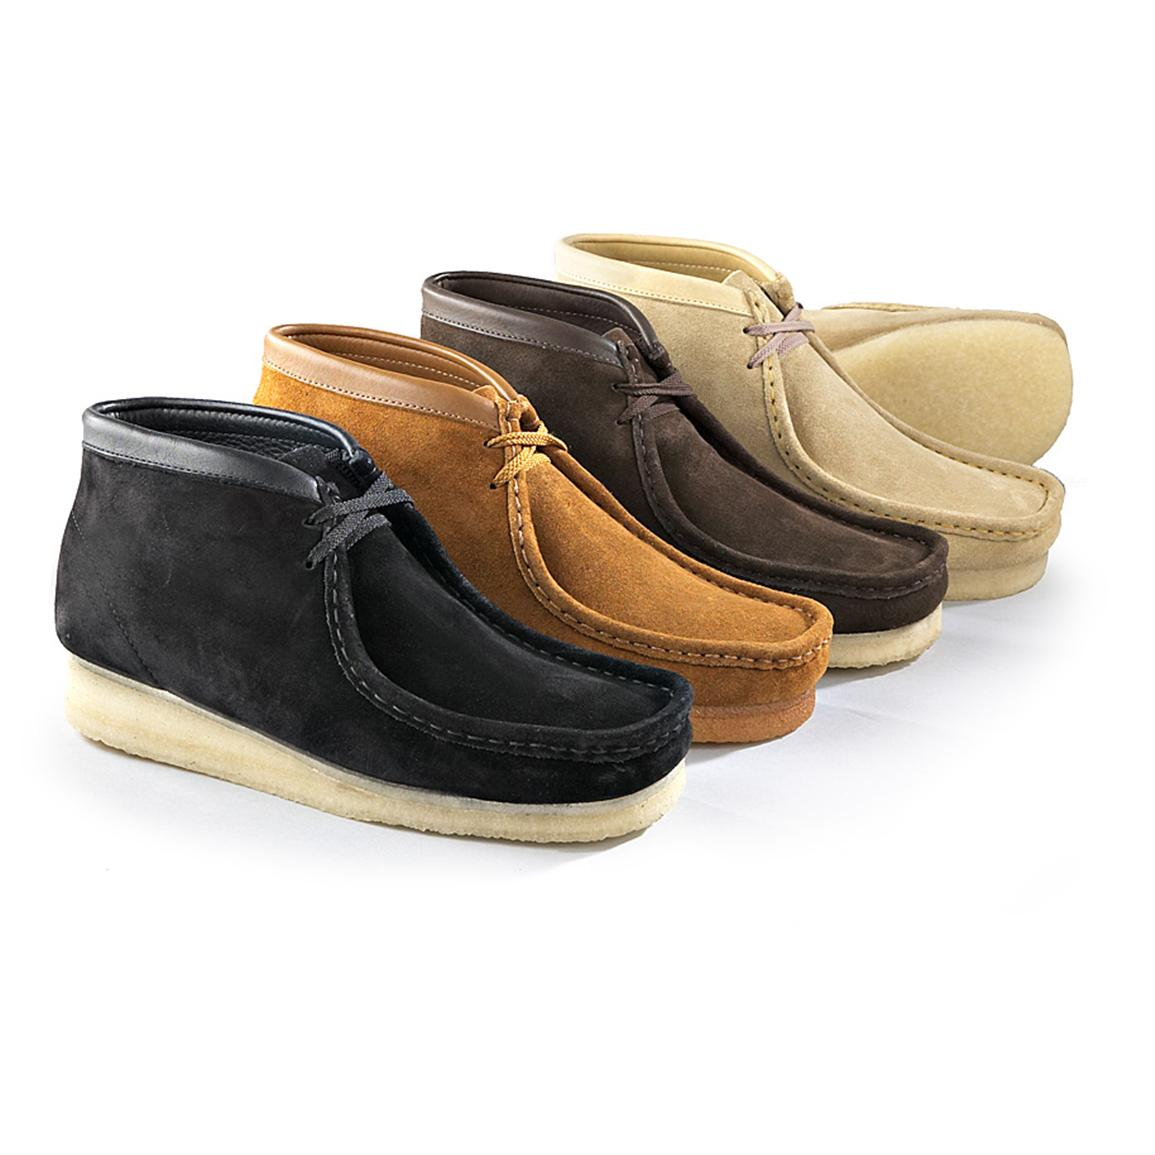 Clarks Work Boots | Clarks Wallabees Men | Clarks Wallabees Mens Sale